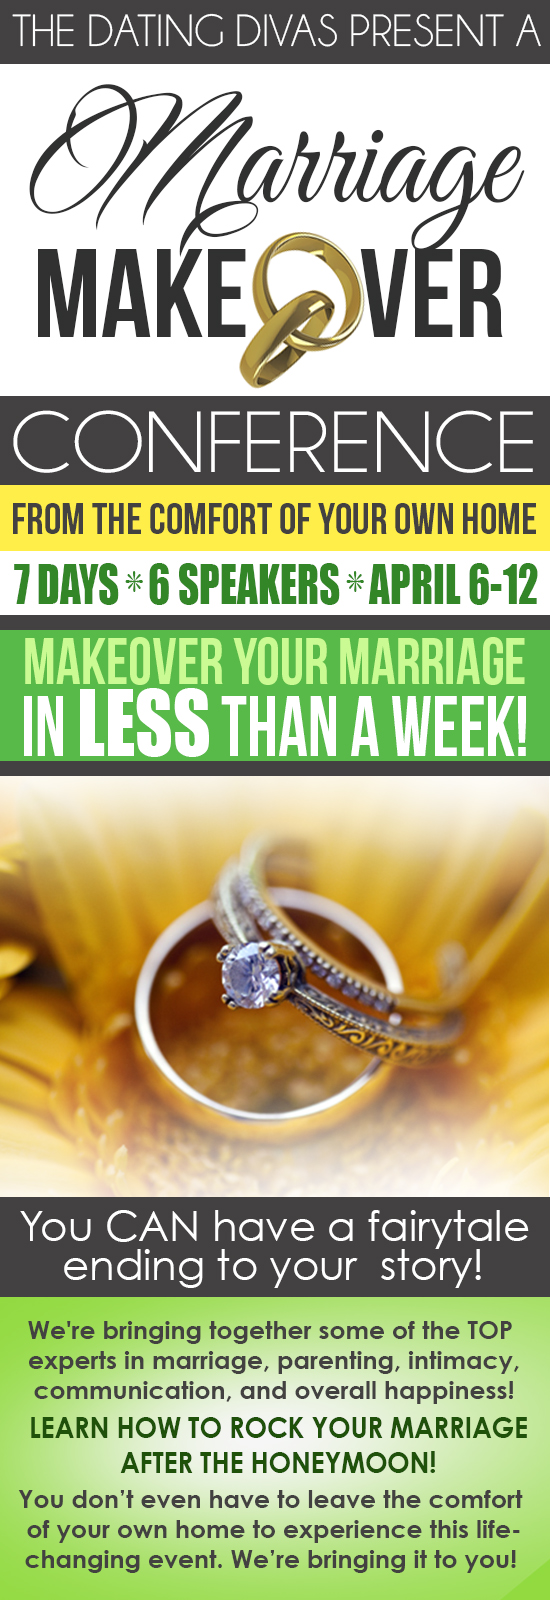 Emily-Marriage Makeover Conference Pinterest Picture-Pinterest